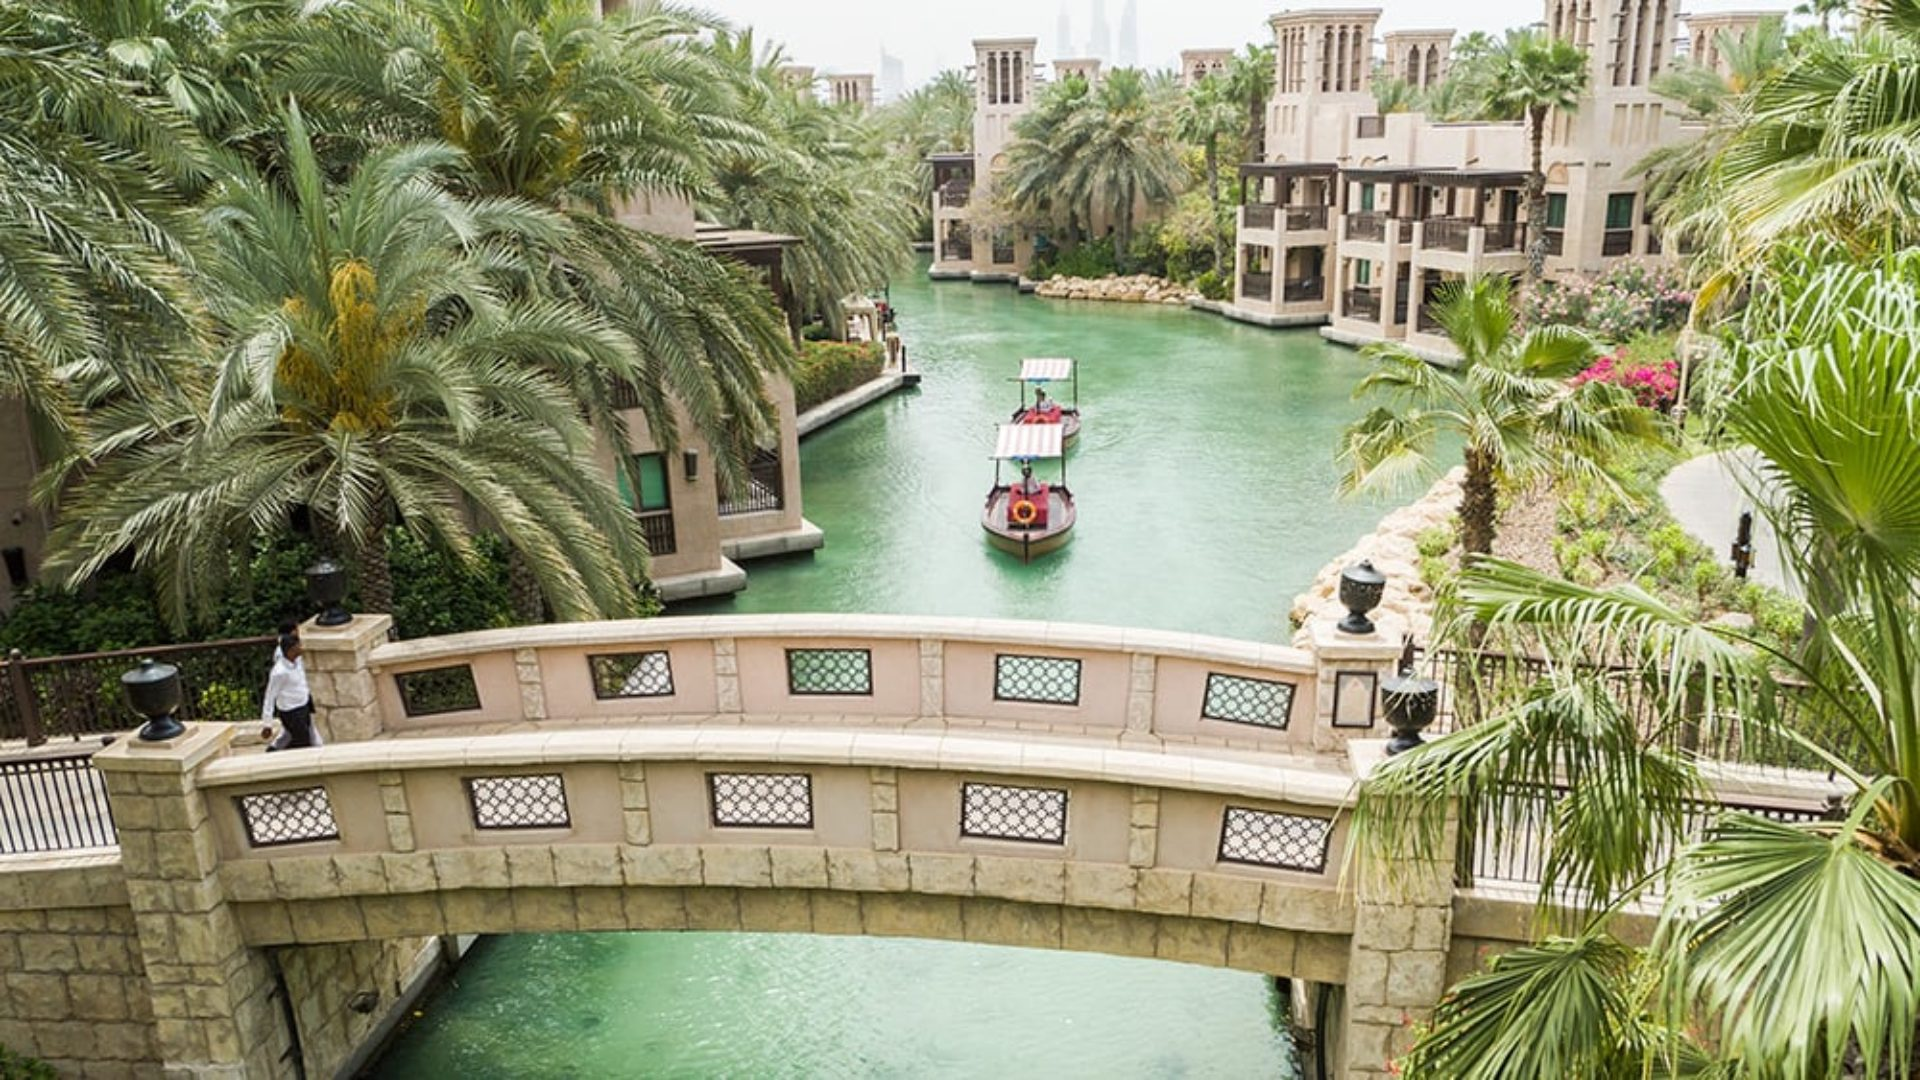 Abra Waterways at Jumeirah Dar Al Masyaf